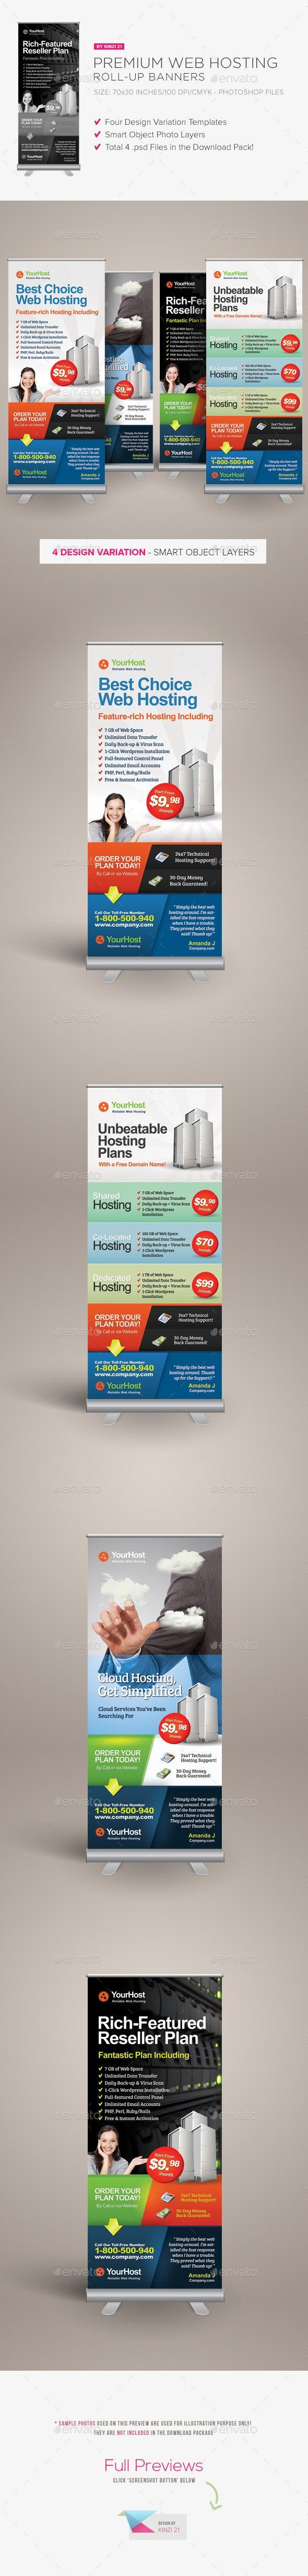 Ad: Premium Web Hosting Roll-up Banners | GraphicRiver | Buy Premium Web Hosting...